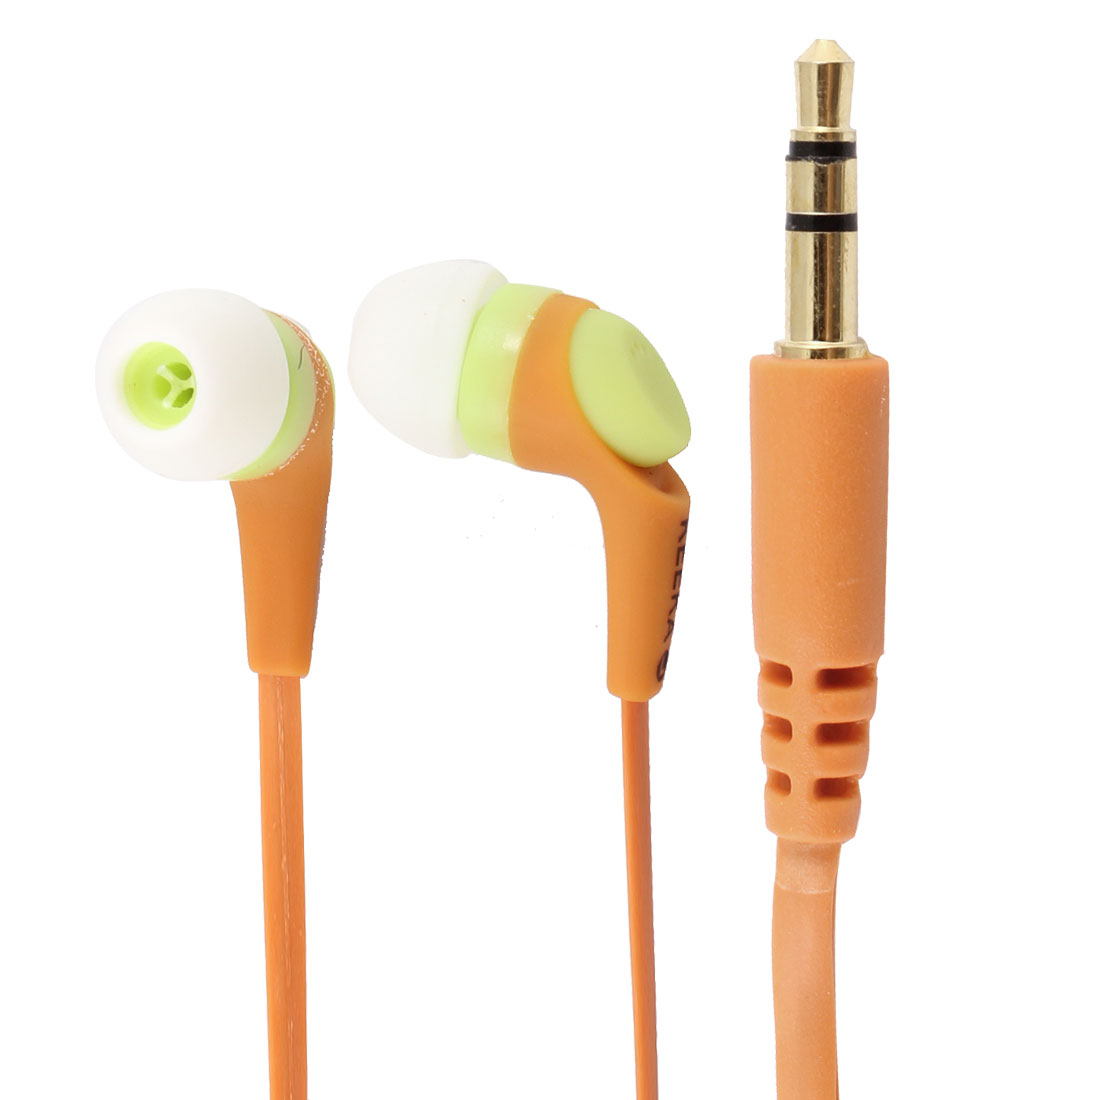 Authorized KEEKA 3.5mm Orange In Ear Headphone Earphone Headset 1M